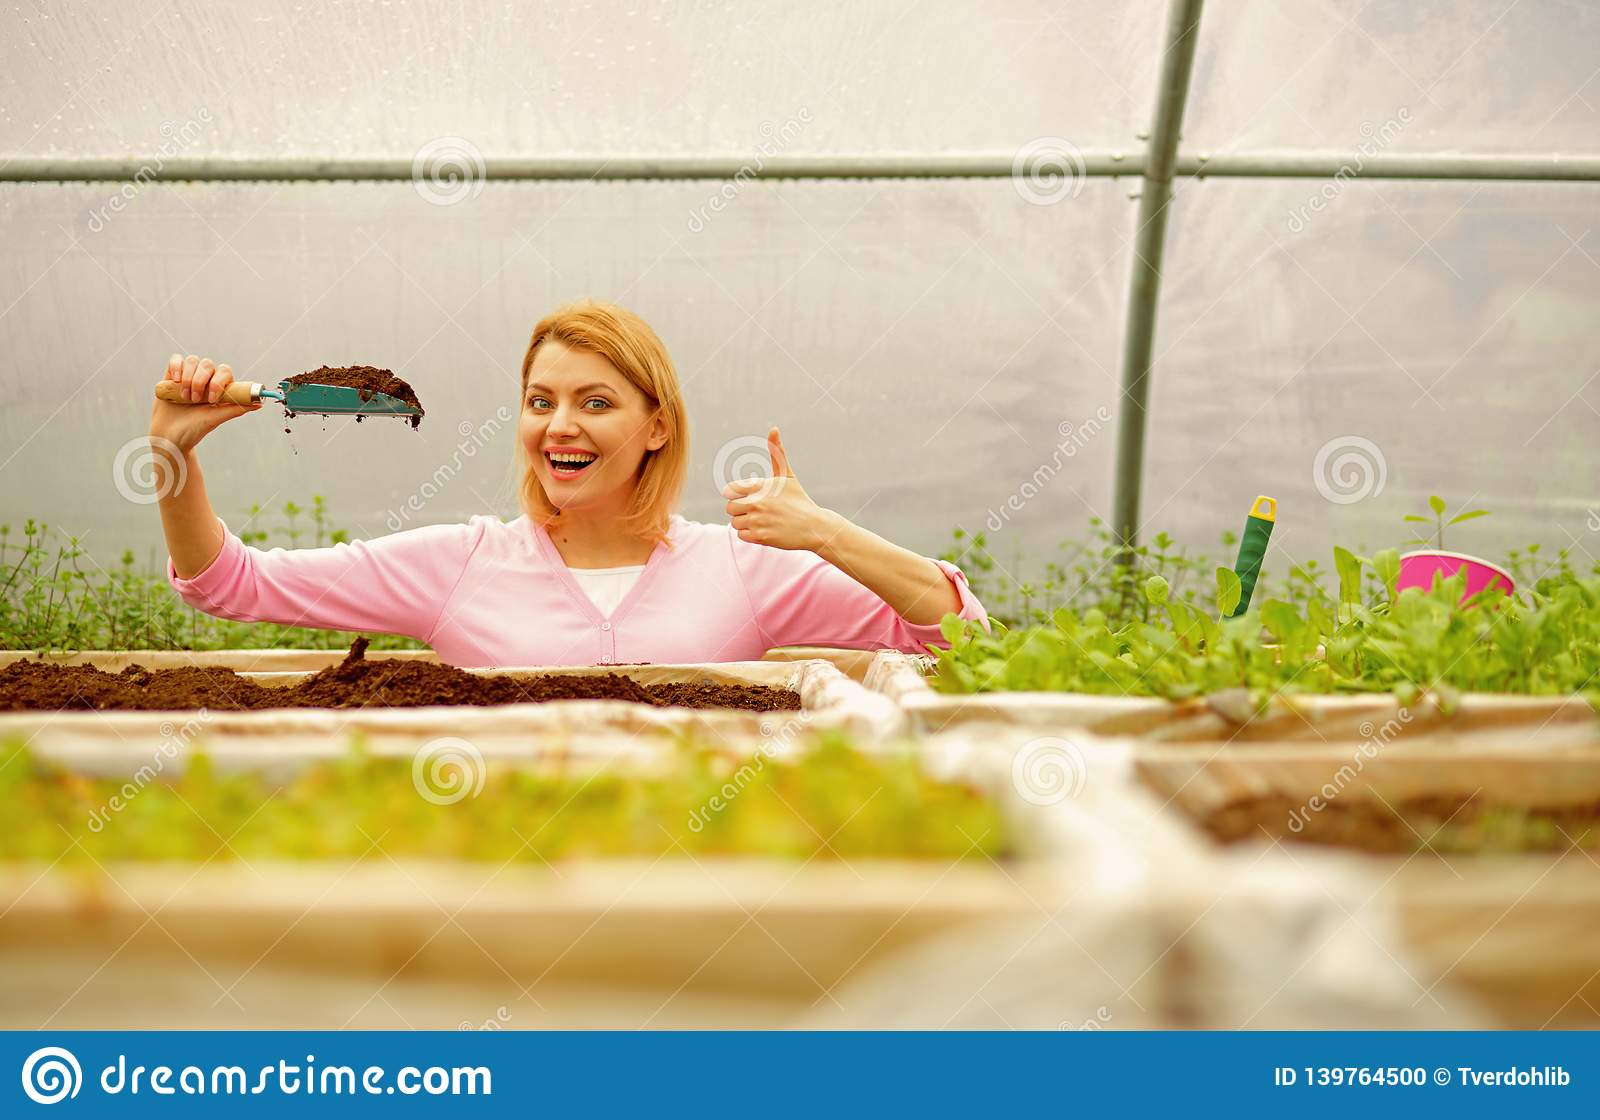 Soil producer. rich soil producer. soil producer industry. woman represent soil producer showing thumb up. working with